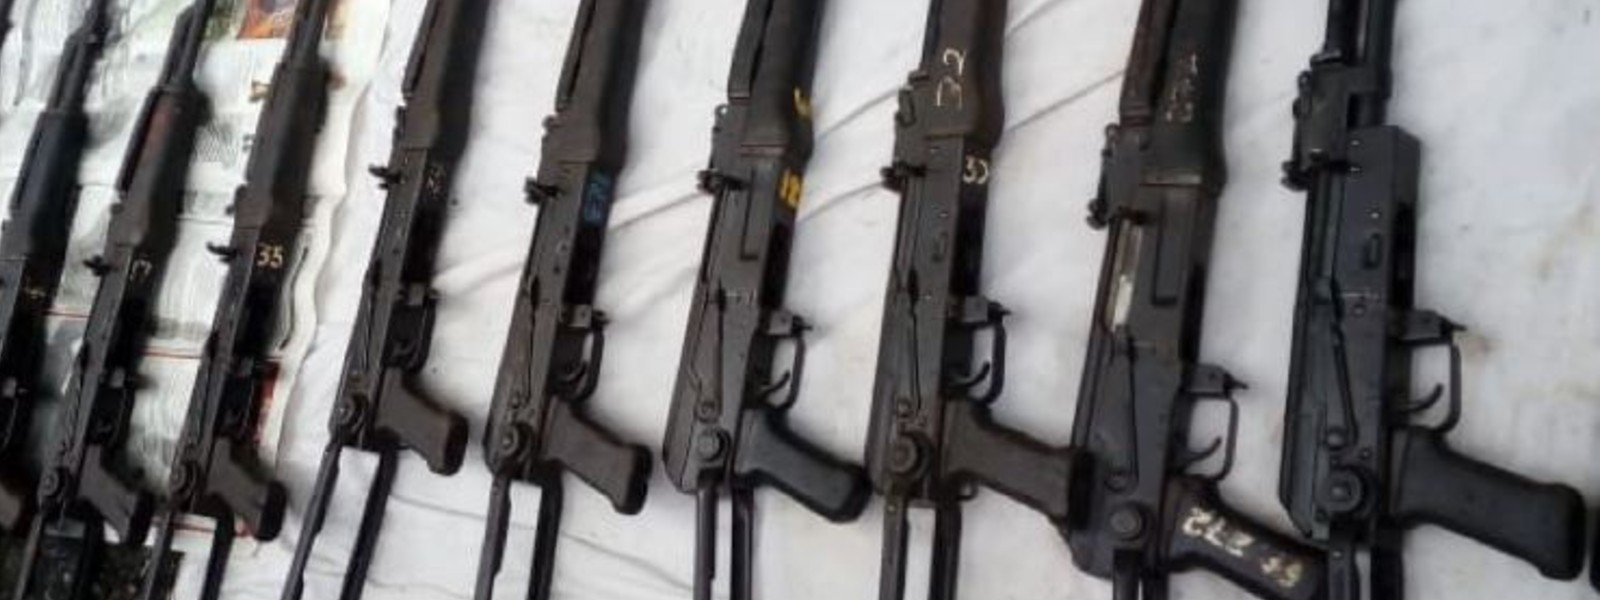 CID leading investigation on discovery of Assault Rifles from Homagama